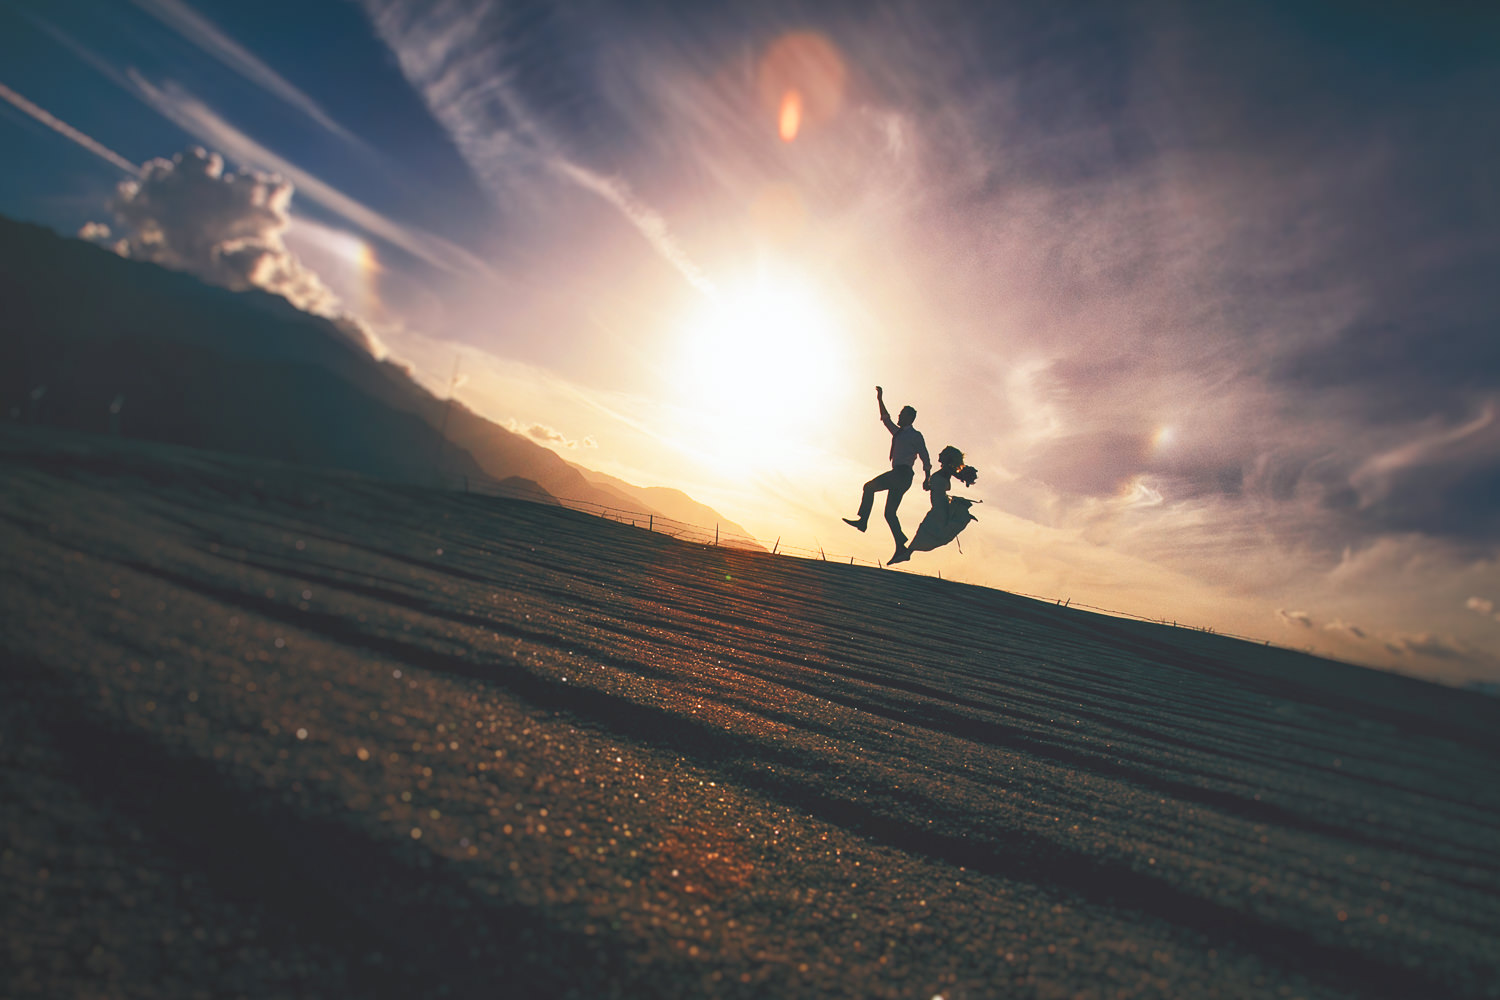 Avalon Palm Springs Photographer - Jumping into the sunset